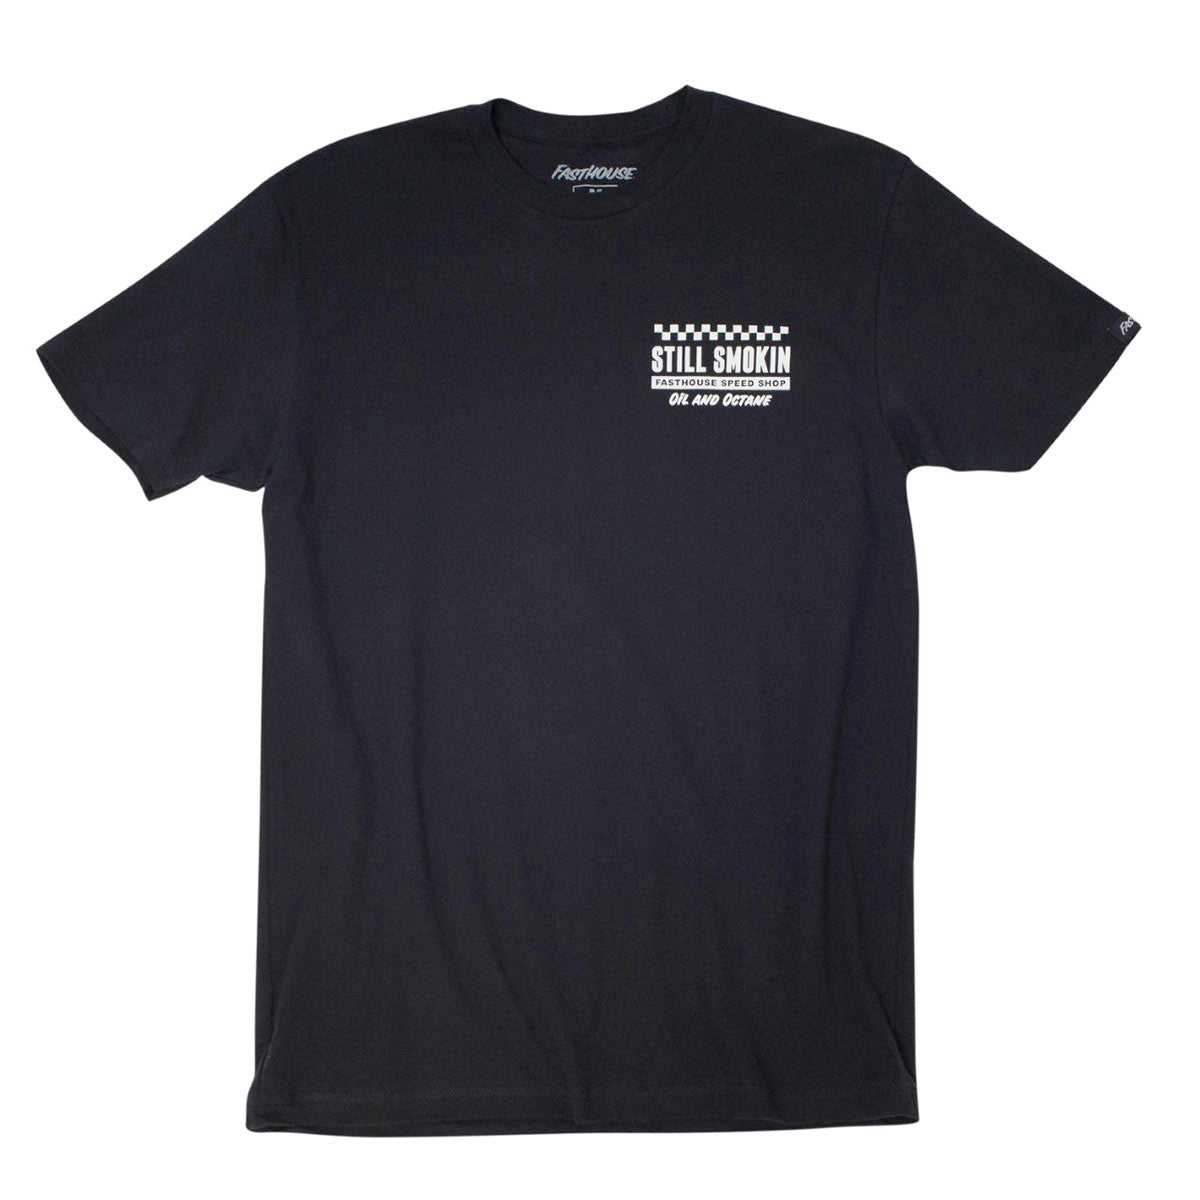 Still Smoking '20 Tee - Black